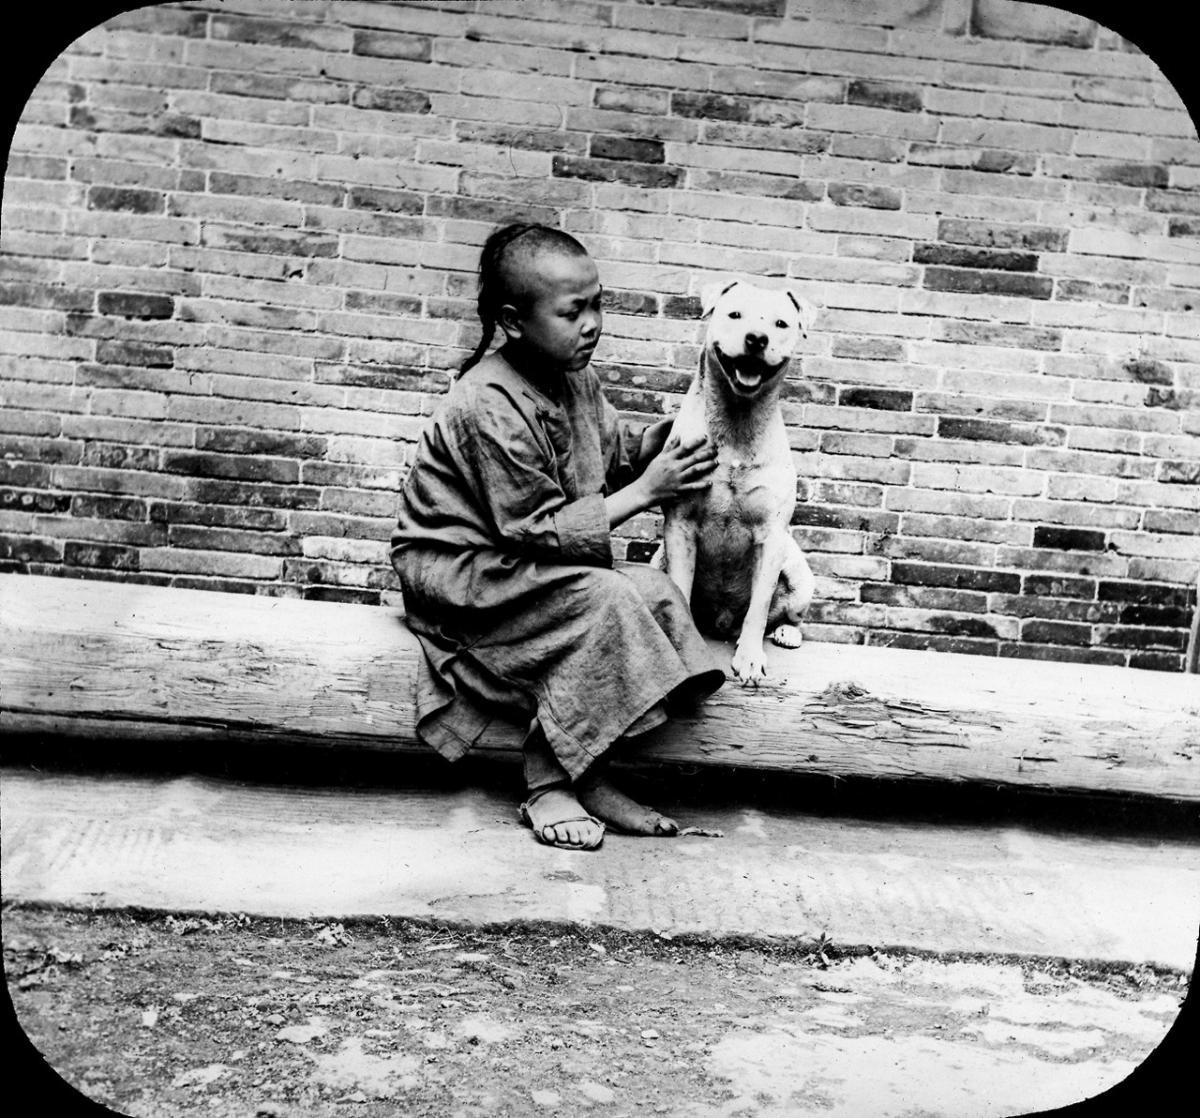 A lantern slide from the Ferracute Machine Company, depicting an unidentified child sitting with Snooks the dog in China, 1898.